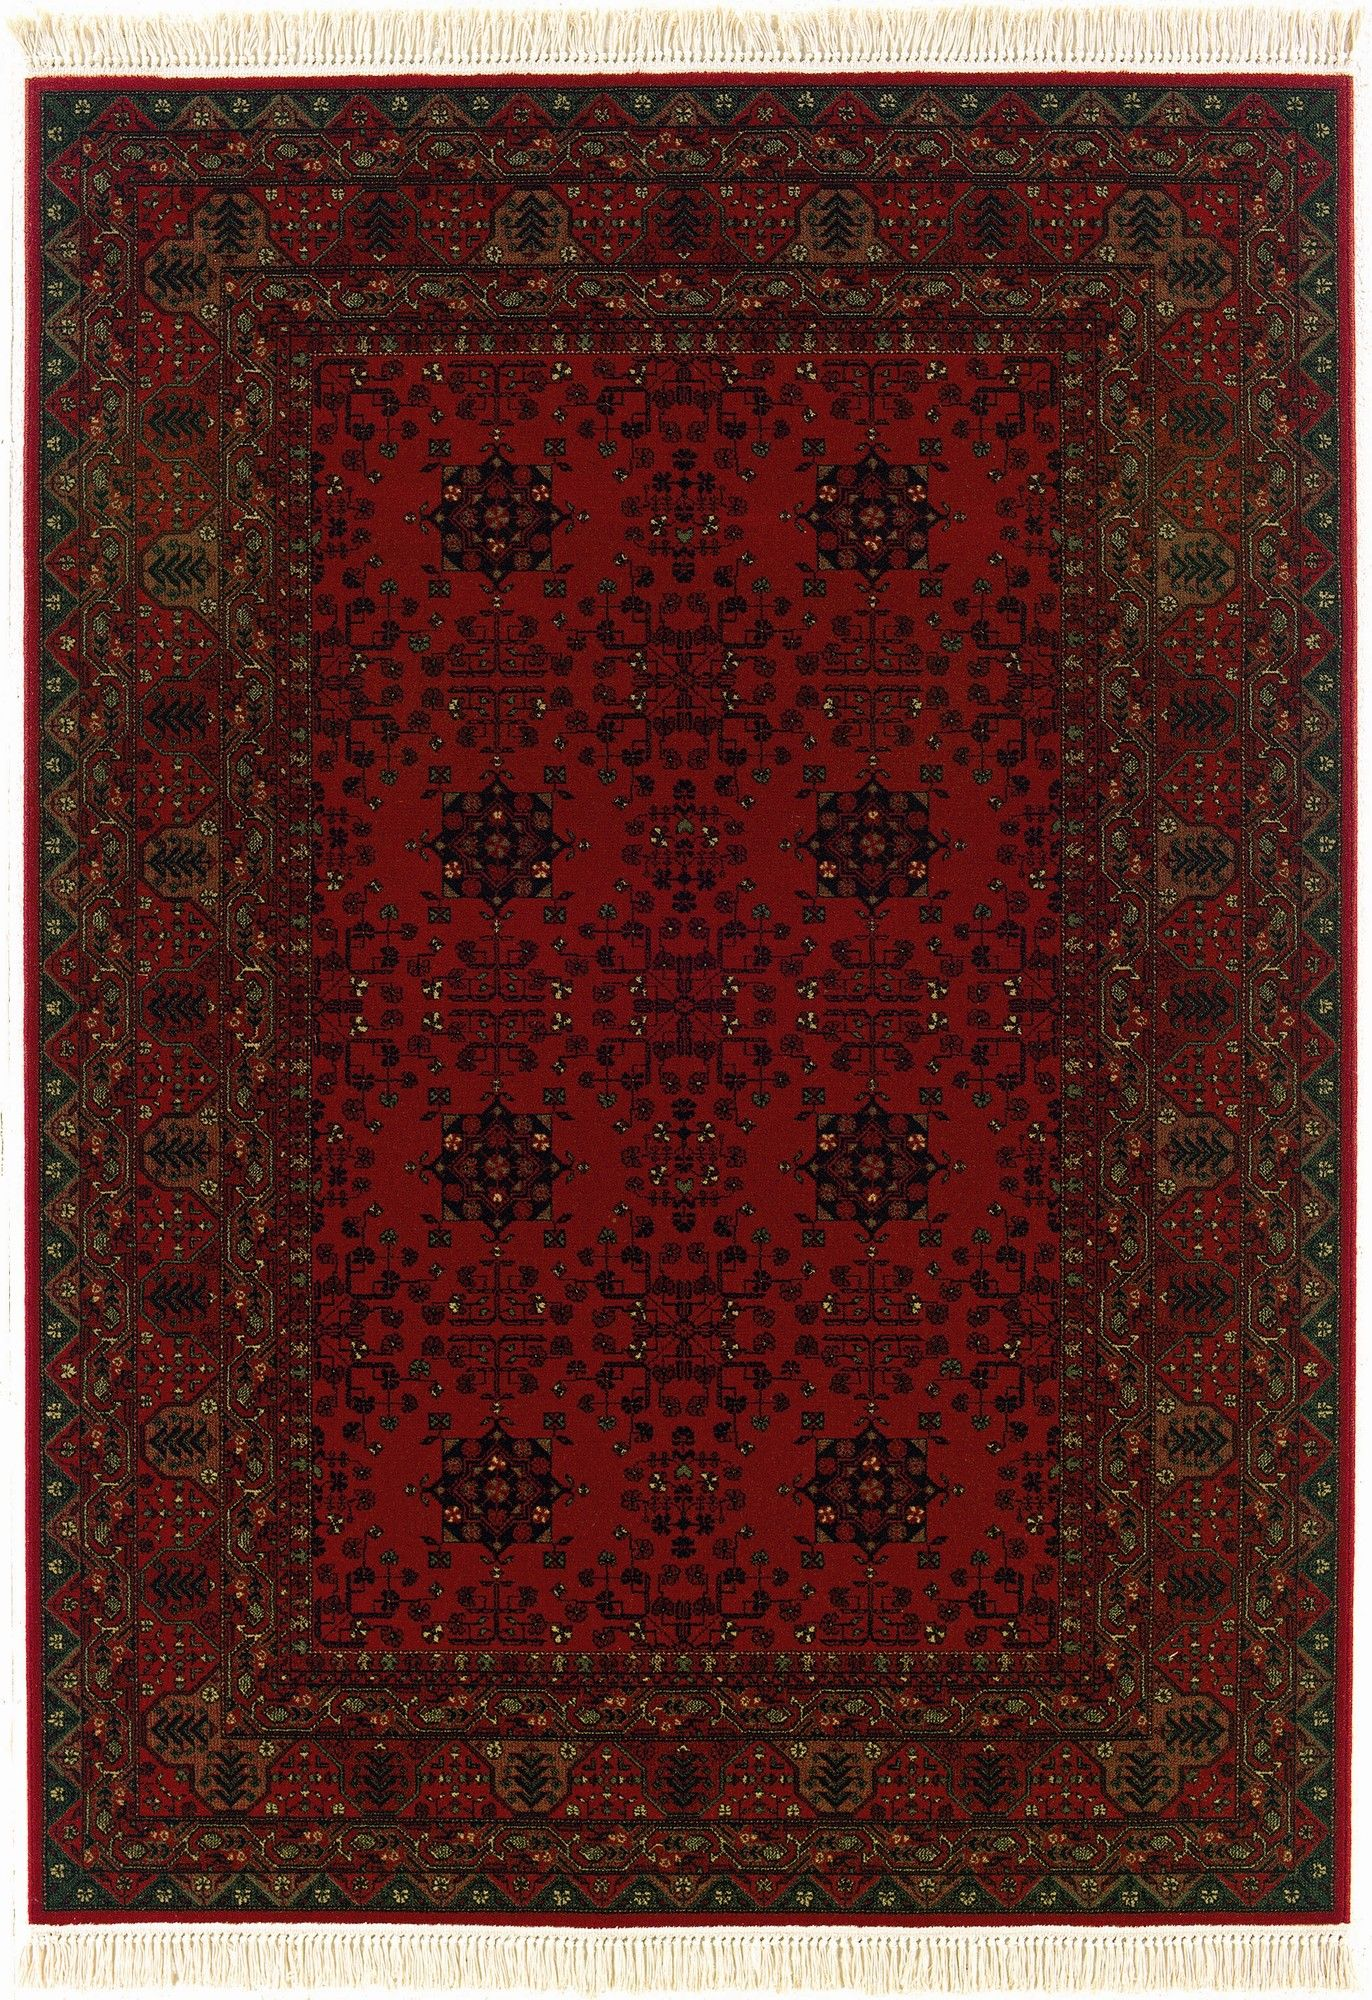 Couristan Kashimar Afghan Nomad Red Rug Reviews Wayfair